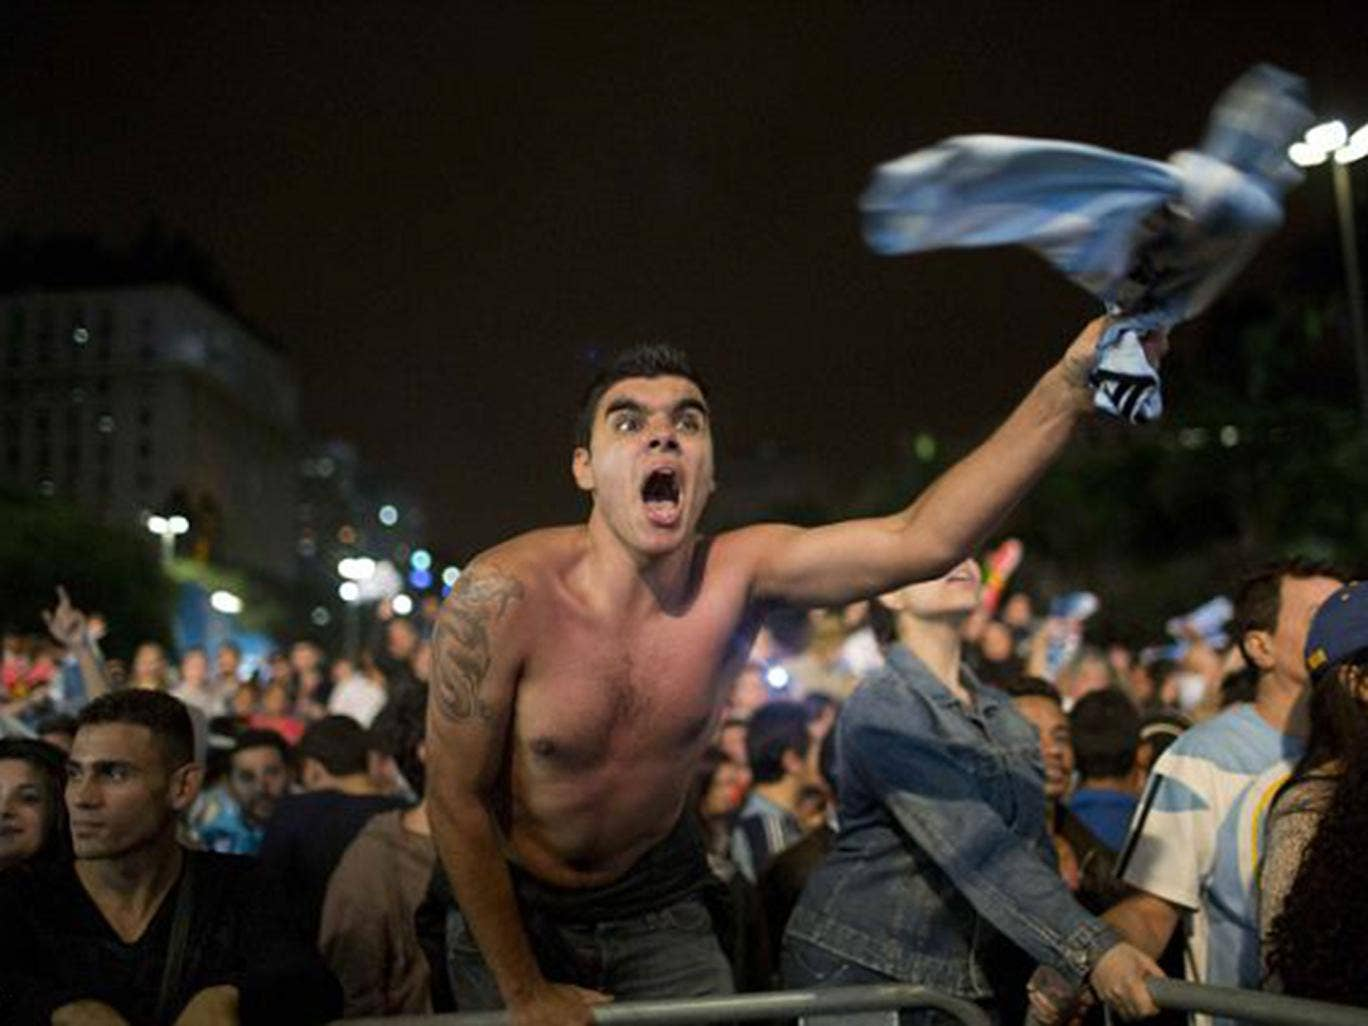 There were mass celebrations across Argentina as the country's national team reached their first World Cup final for 24 years